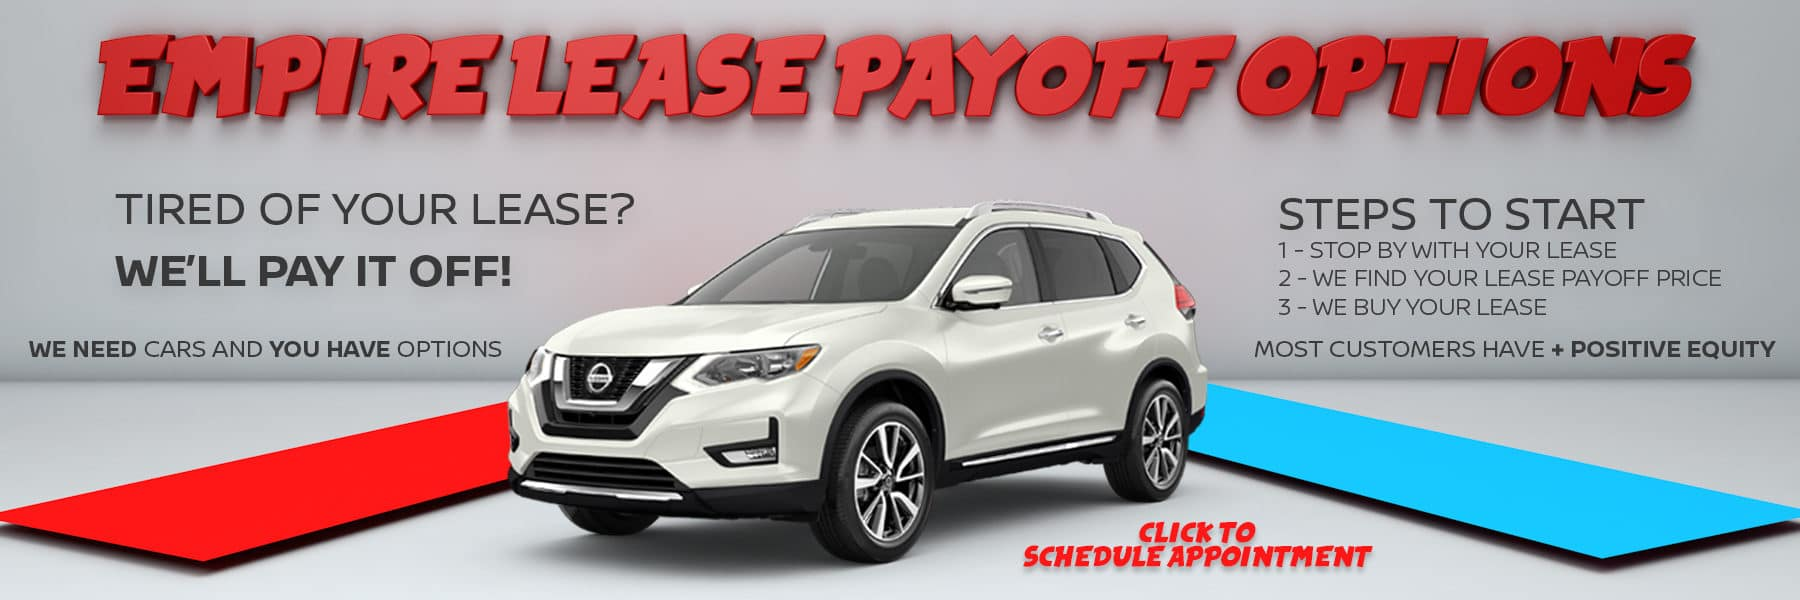 Lease Payoff Banner4